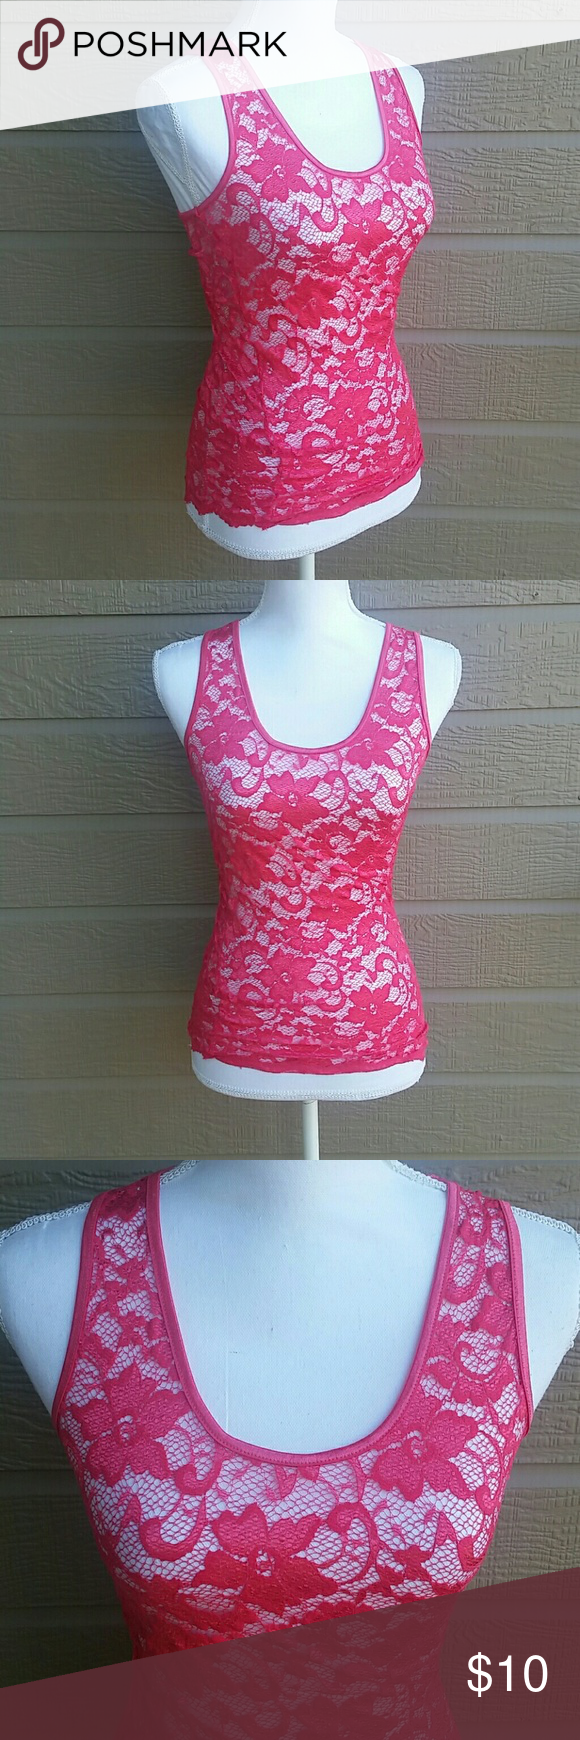 ❤5/$25❤ Buckle BKE hot pink lace tank top M Buckle BKE hot pink stretchy lace tank top in size MEDIUM. In good condition. Bundle for a discount or make an offer! BKE Tops Tank Tops